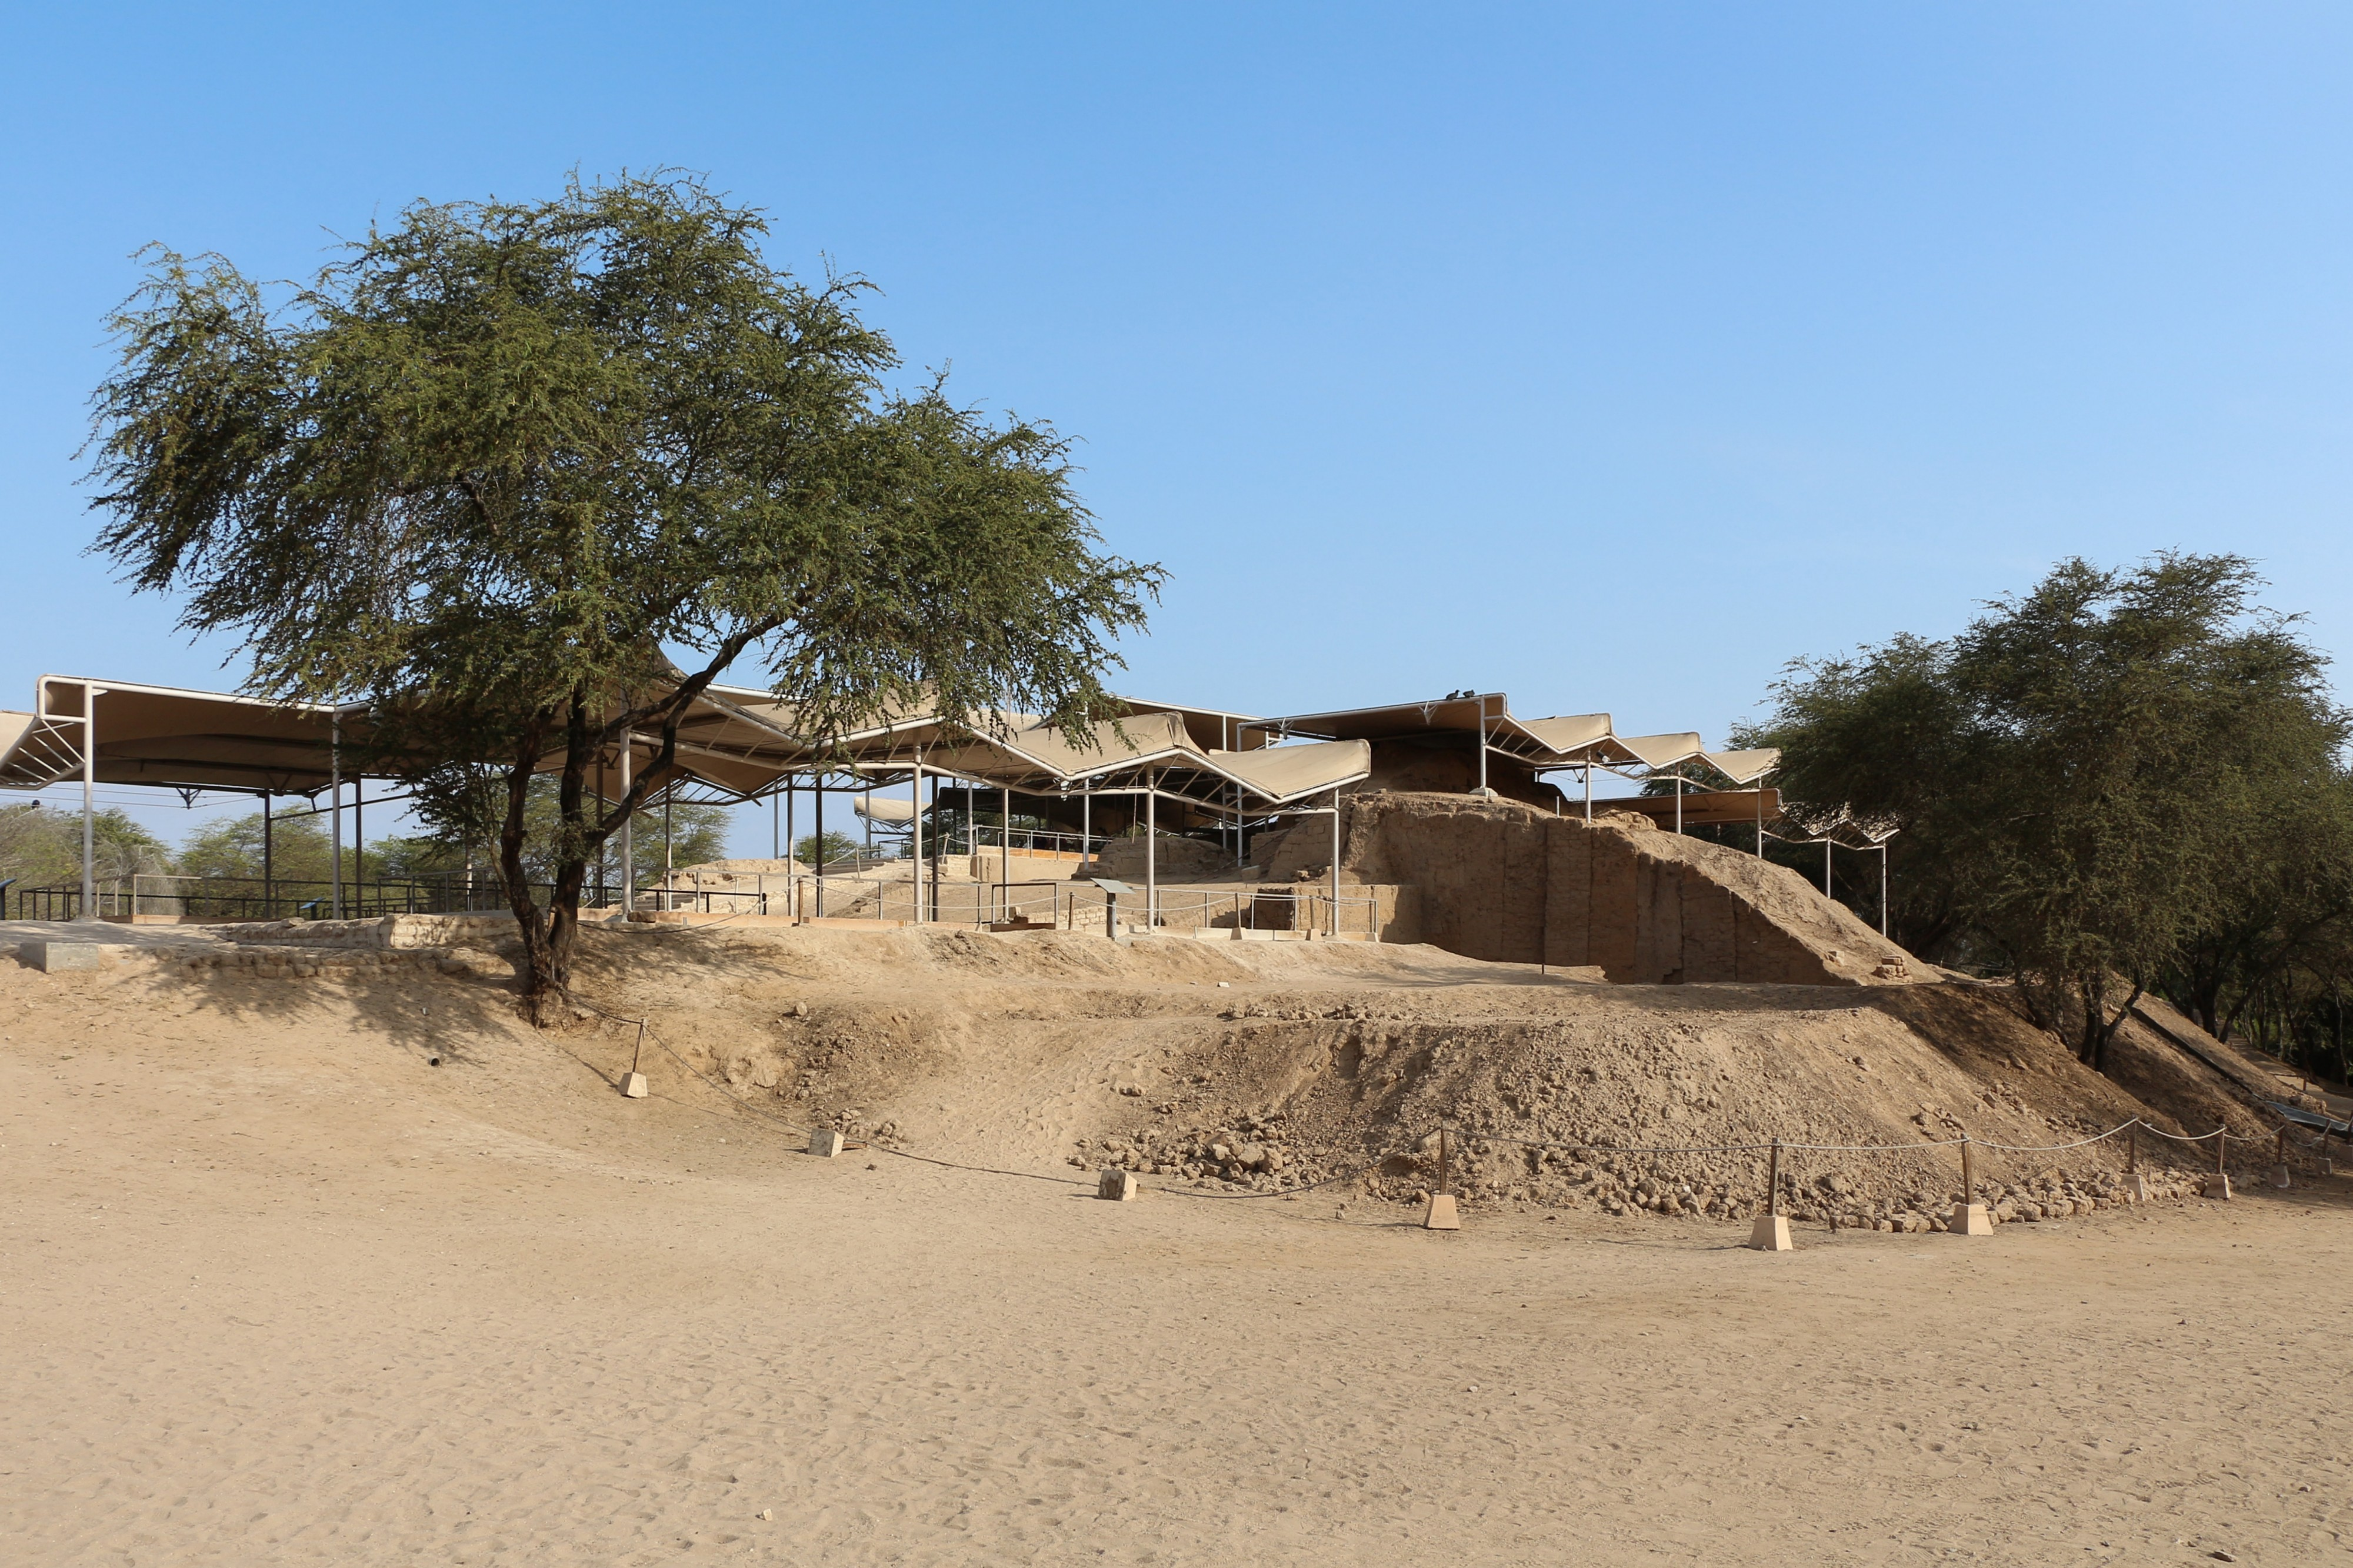 Site of Huaca Rajada